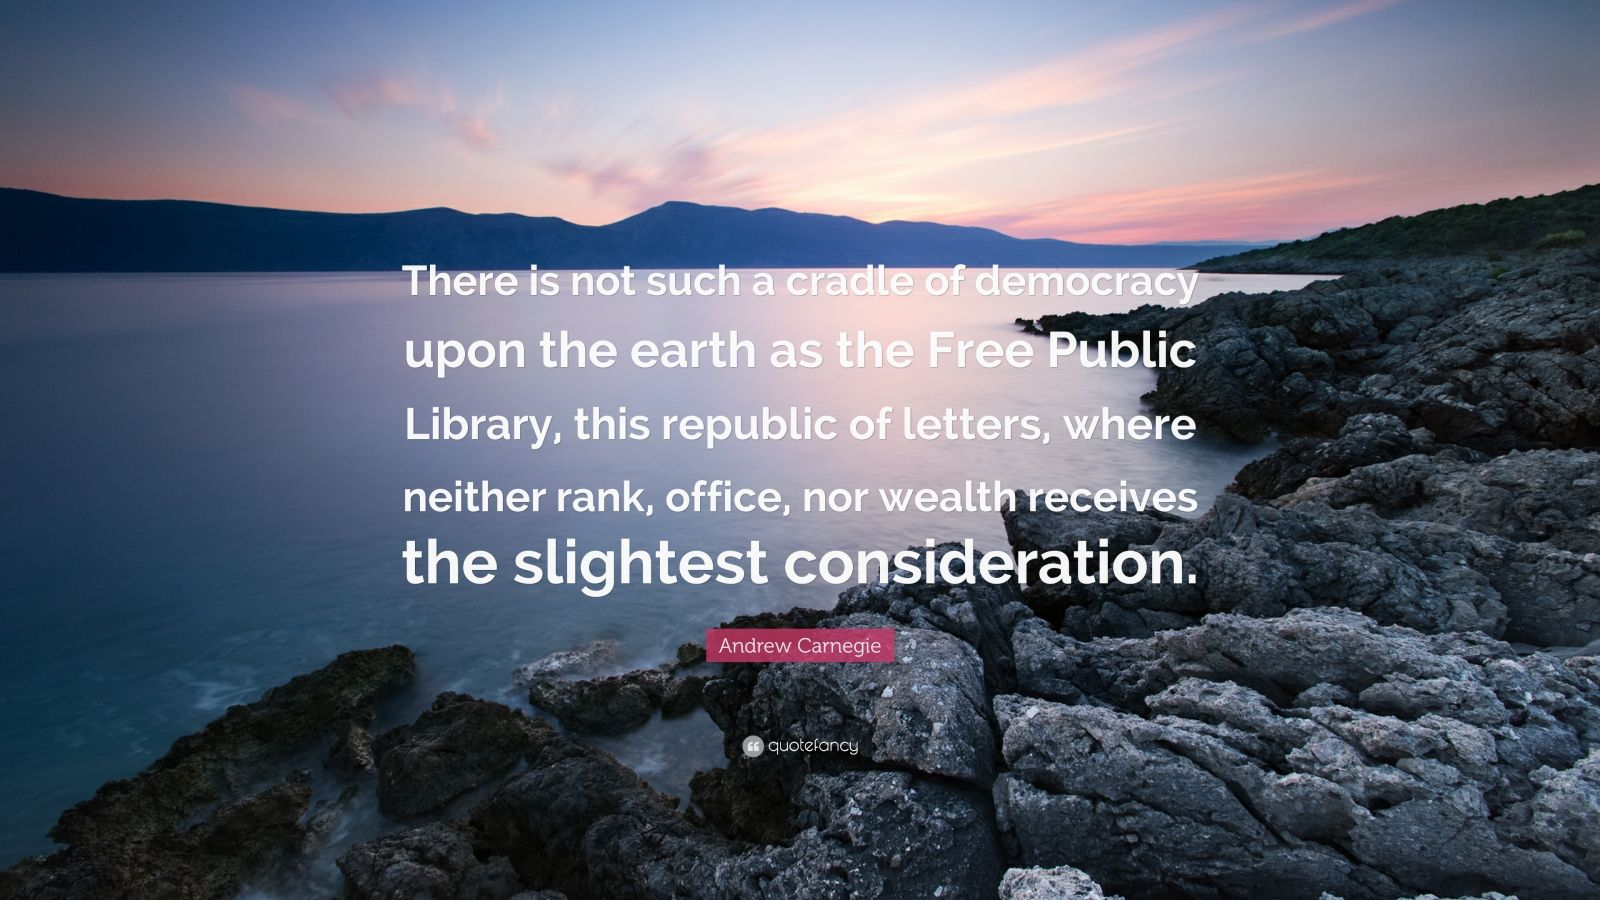 """Andrew Carnegie Quote: """"There is not such a cradle of democracy upon the earth as the Free Public Library, this republic of letters, where neither rank, office, nor wealth receives the slightest consideration."""""""